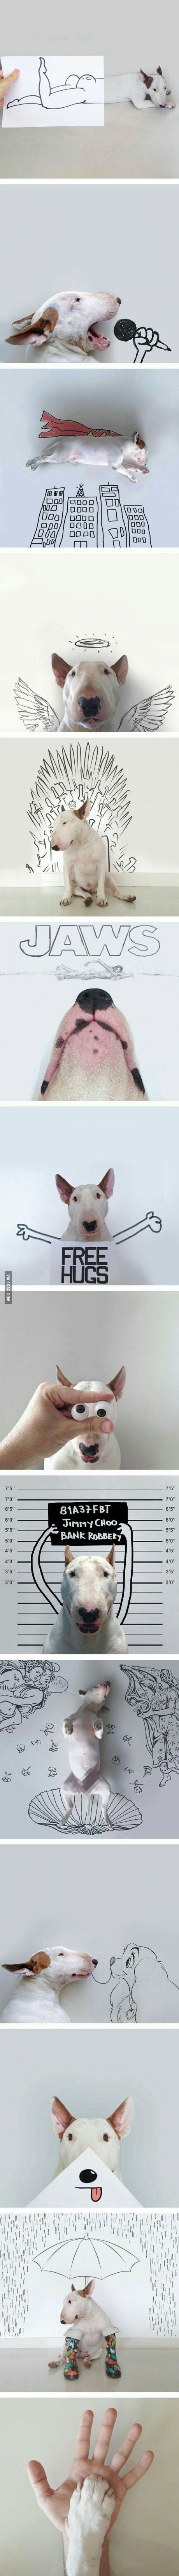 A dog owner created an awesome illustration with his terrier